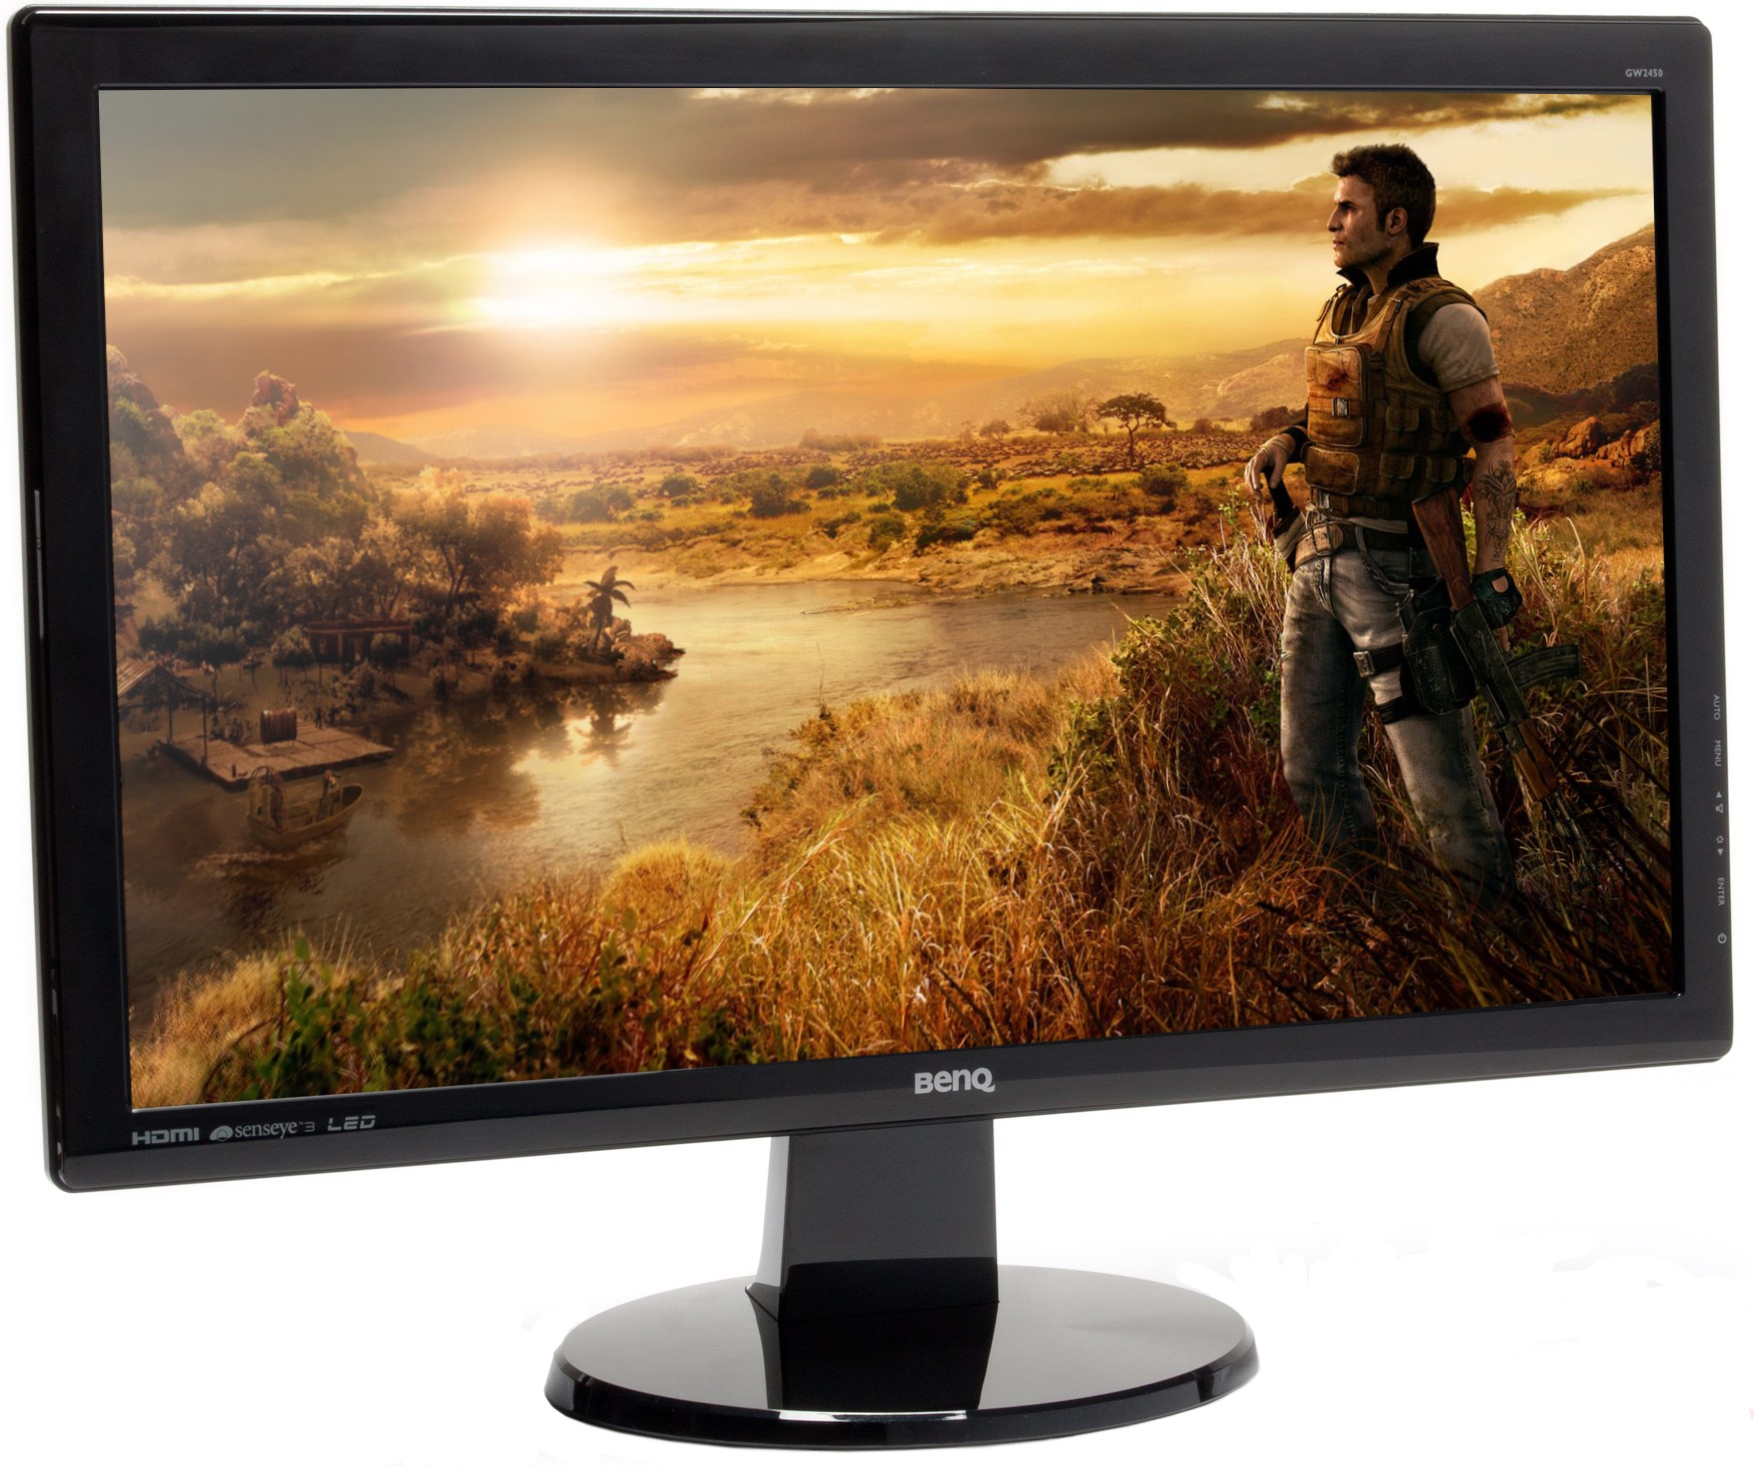 BENQ GW2450H (DIGITAL) DRIVER PC